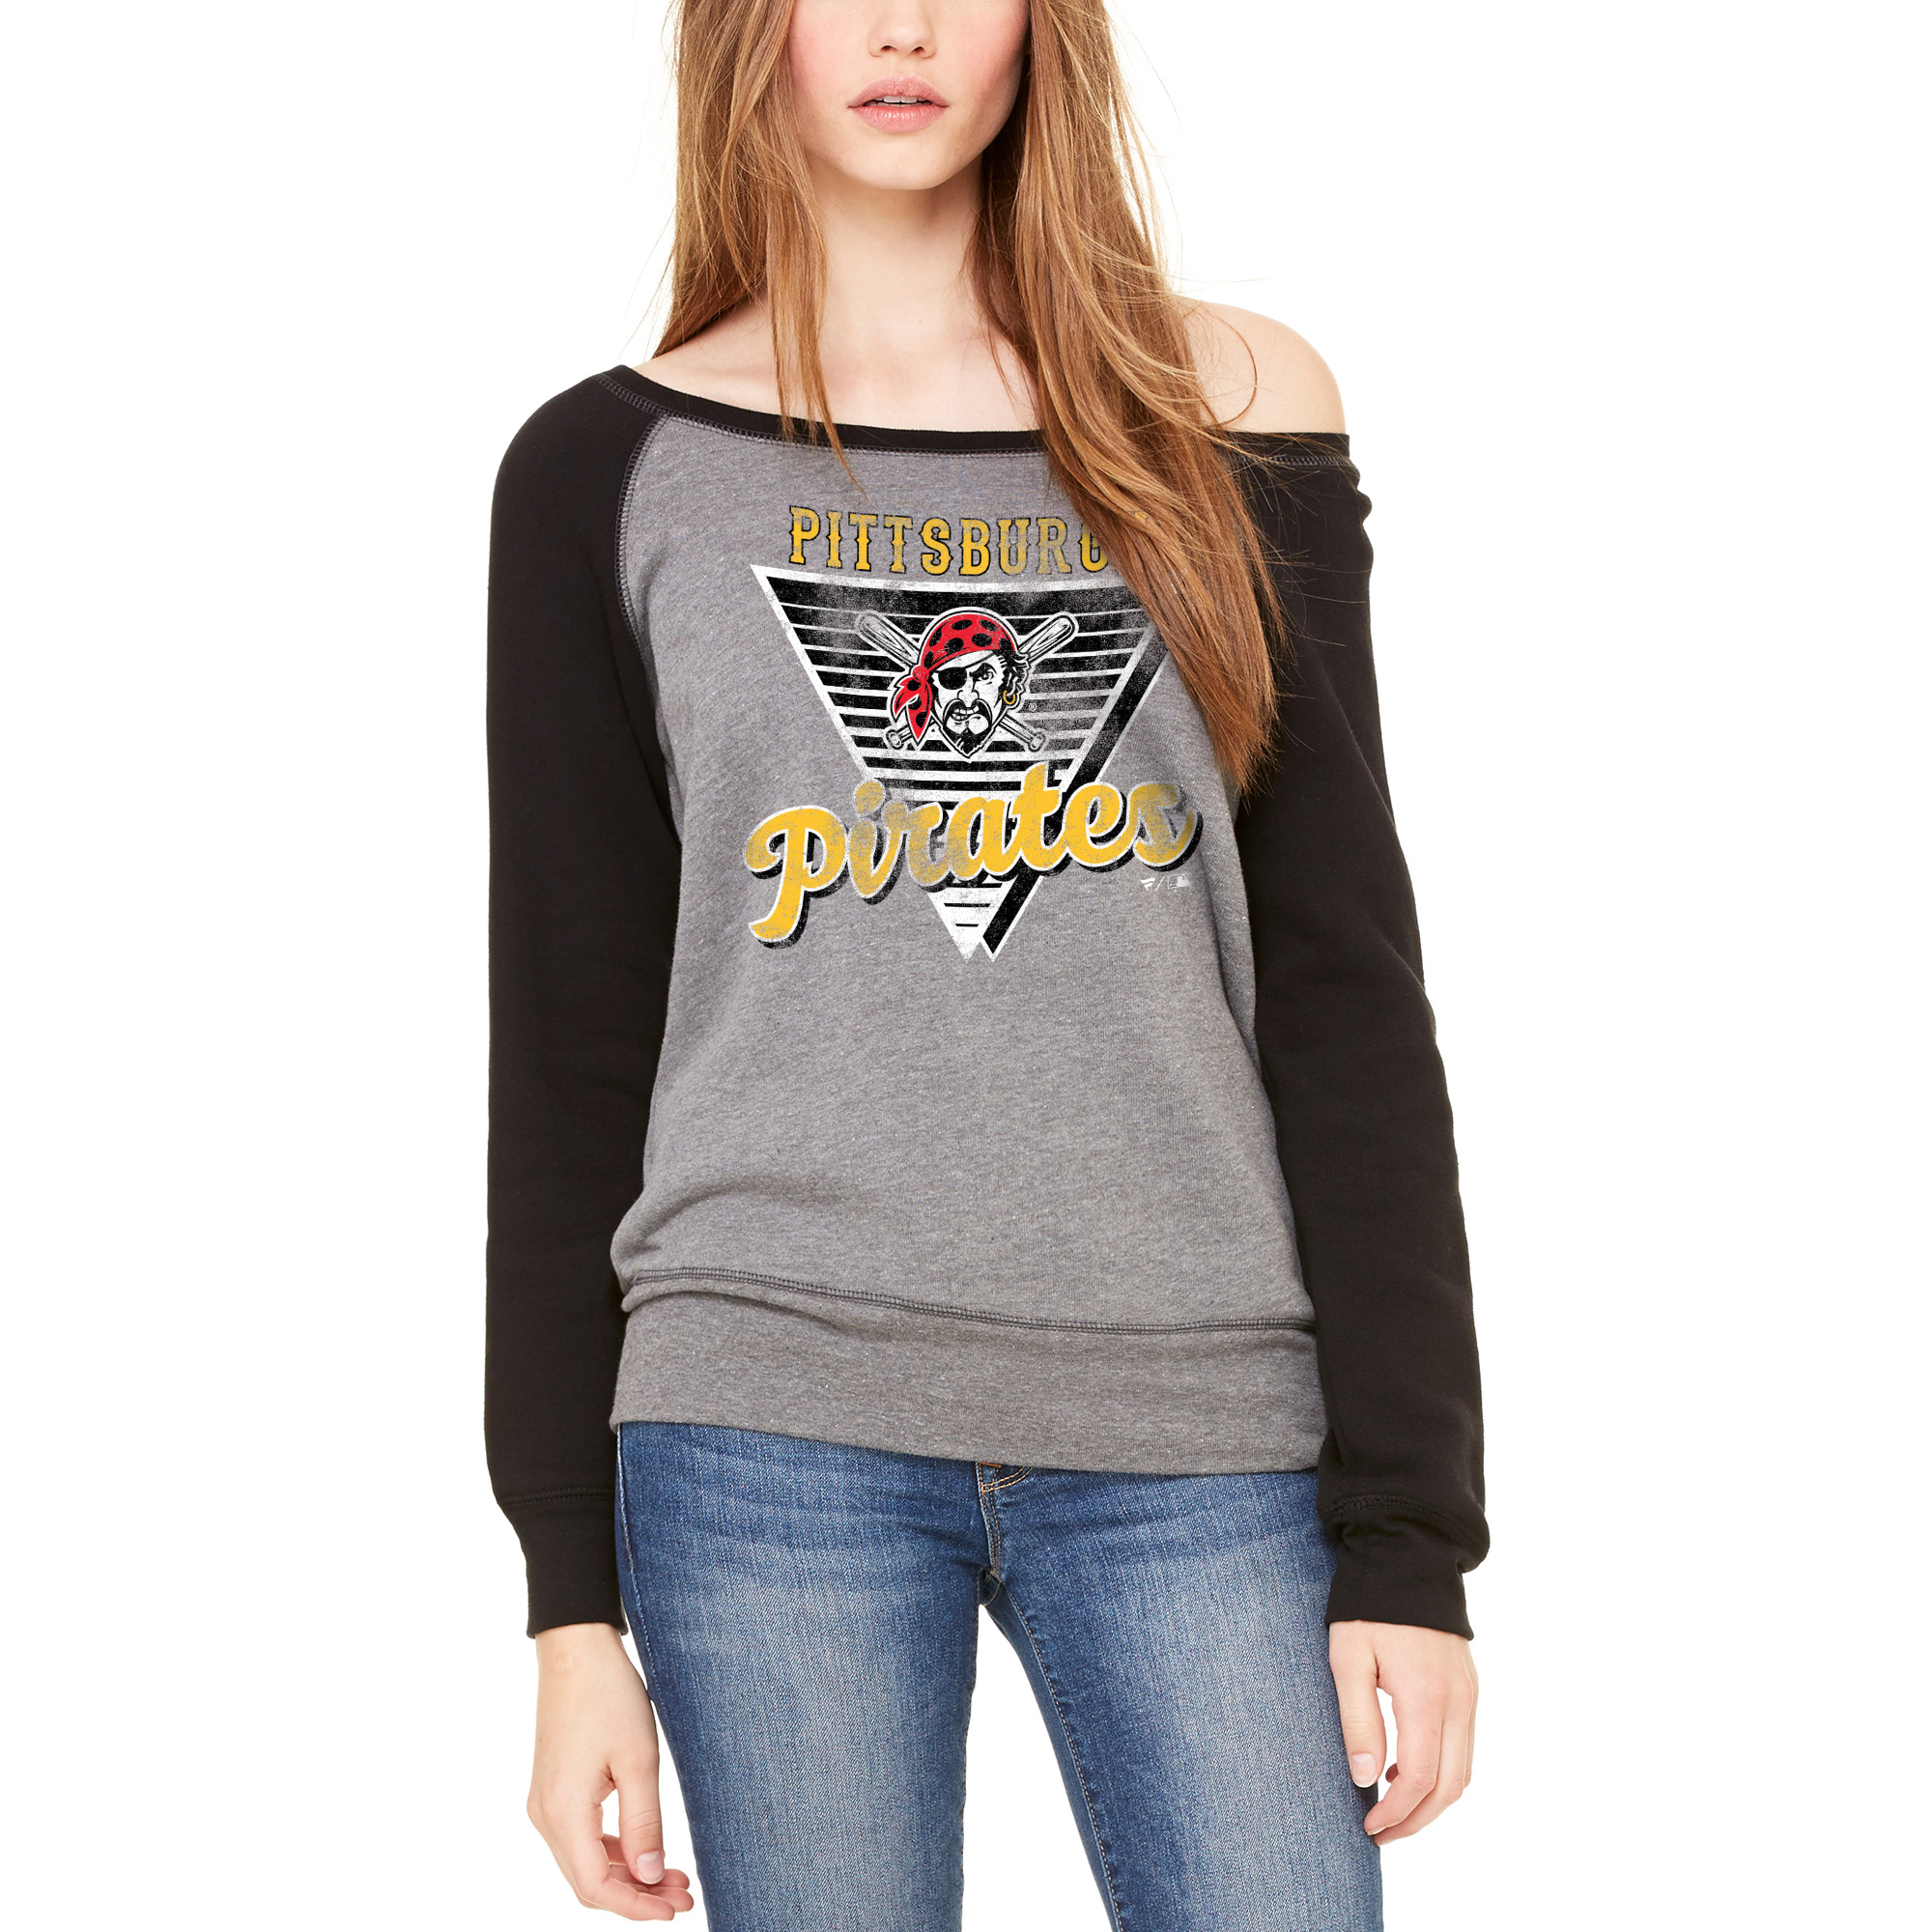 Pittsburgh Pirates Let Loose by RNL Women's Eighty Something Wide Neck Sweatshirt - Heather Gray/Black